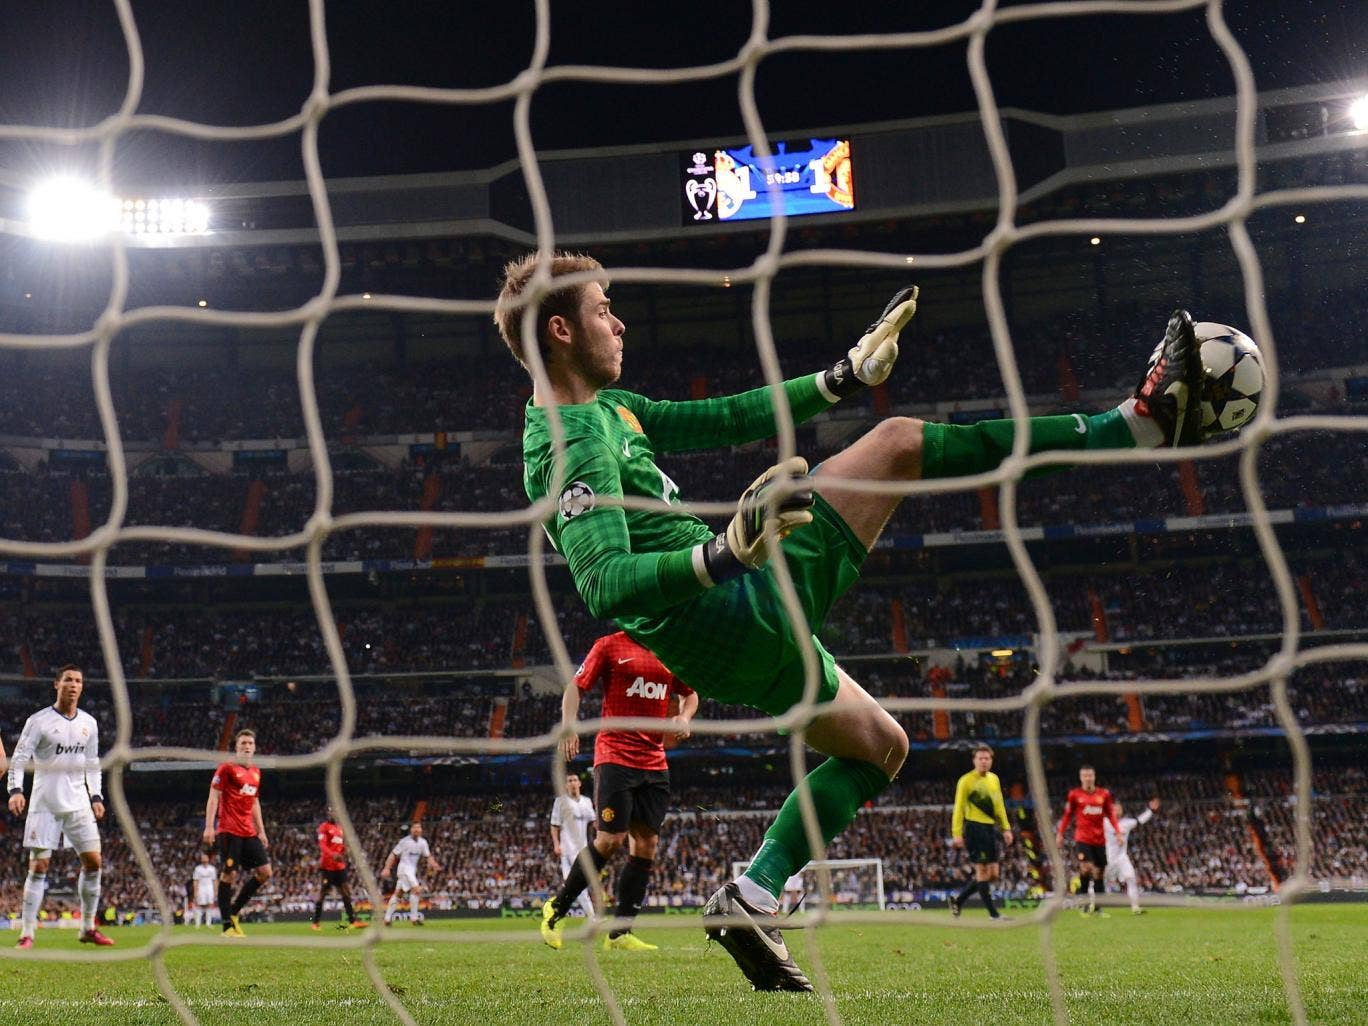 David De Gea repels a shot from Real Madrid with his foot